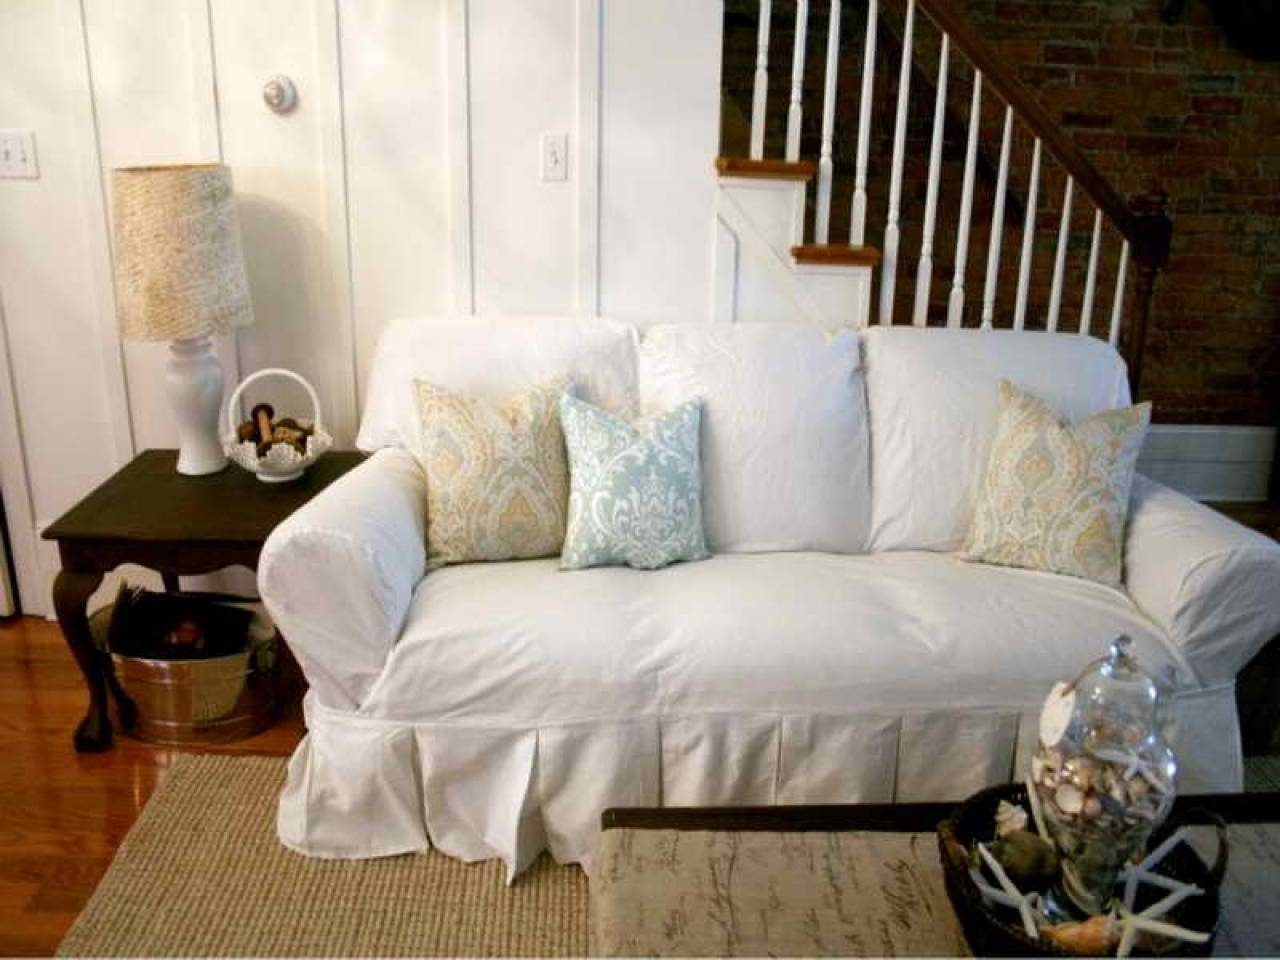 Furniture Home: Shabby Chic Sofa Slipcovers White Sofa Slipcovers Regarding Shabby Chic Sofa Slipcovers (View 5 of 15)